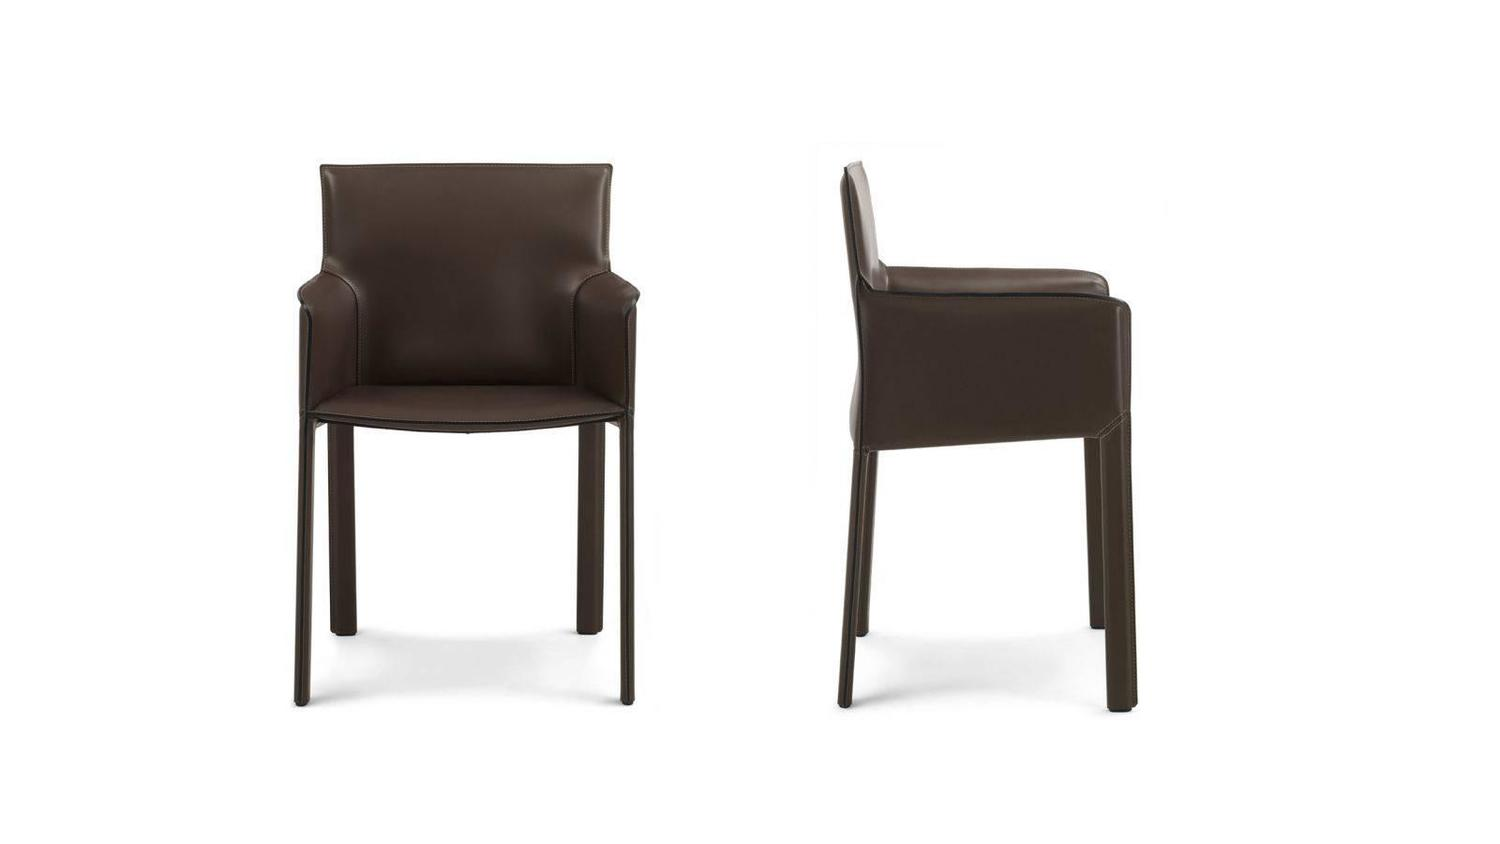 dining chairs italian design covers for bottom of chair legs modern furniture